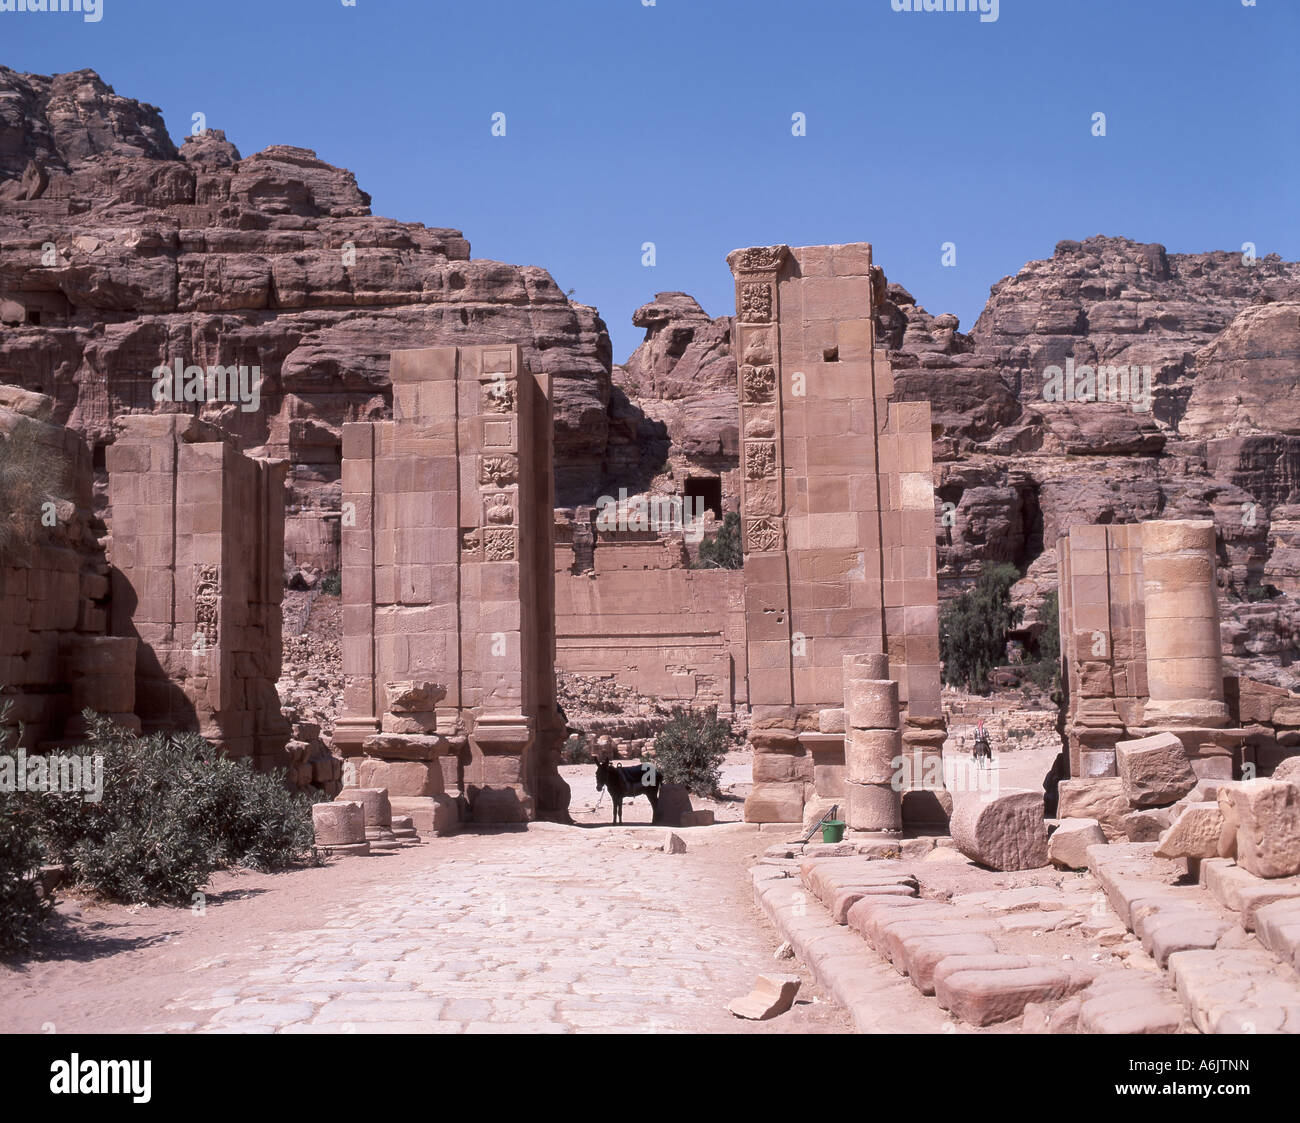 the temple of the winged lions ancient city of petra maan kingdom stock photo 11592704 alamy. Black Bedroom Furniture Sets. Home Design Ideas